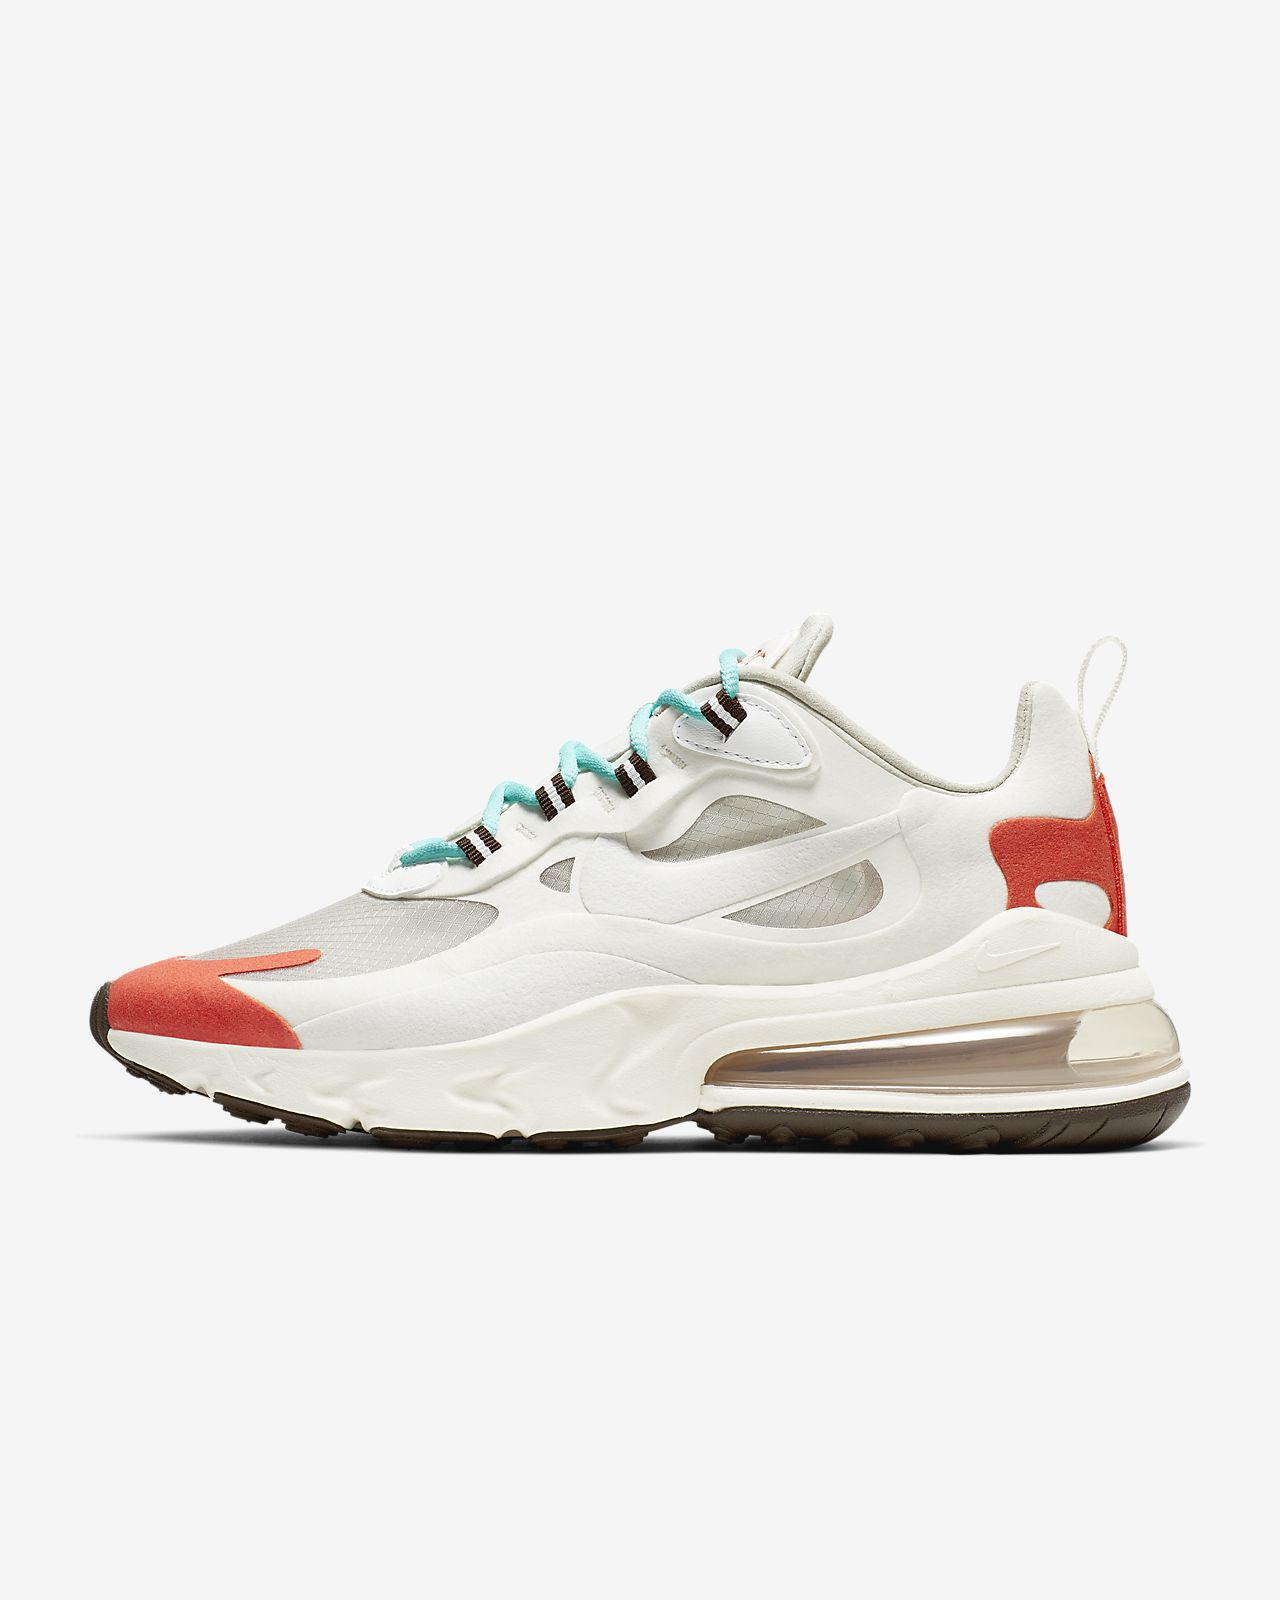 nike air max blue lagoon bright crimson, Women Nike Air Max